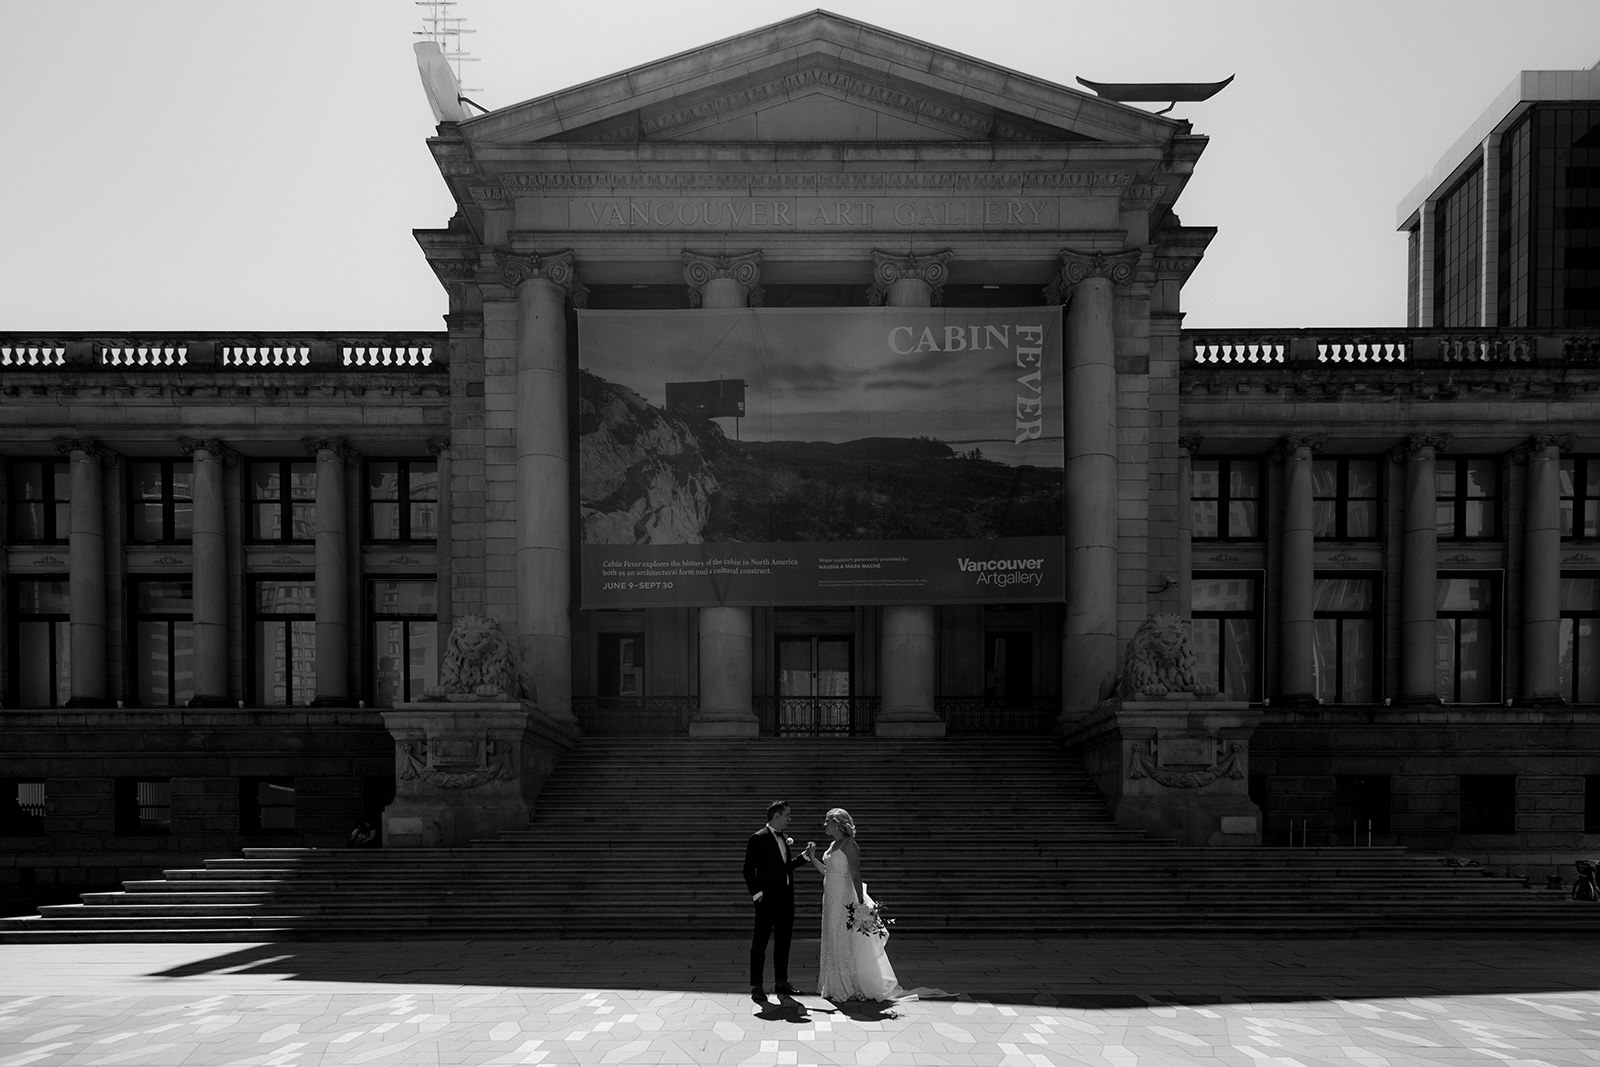 Vancouver Art Gallery wedding photo